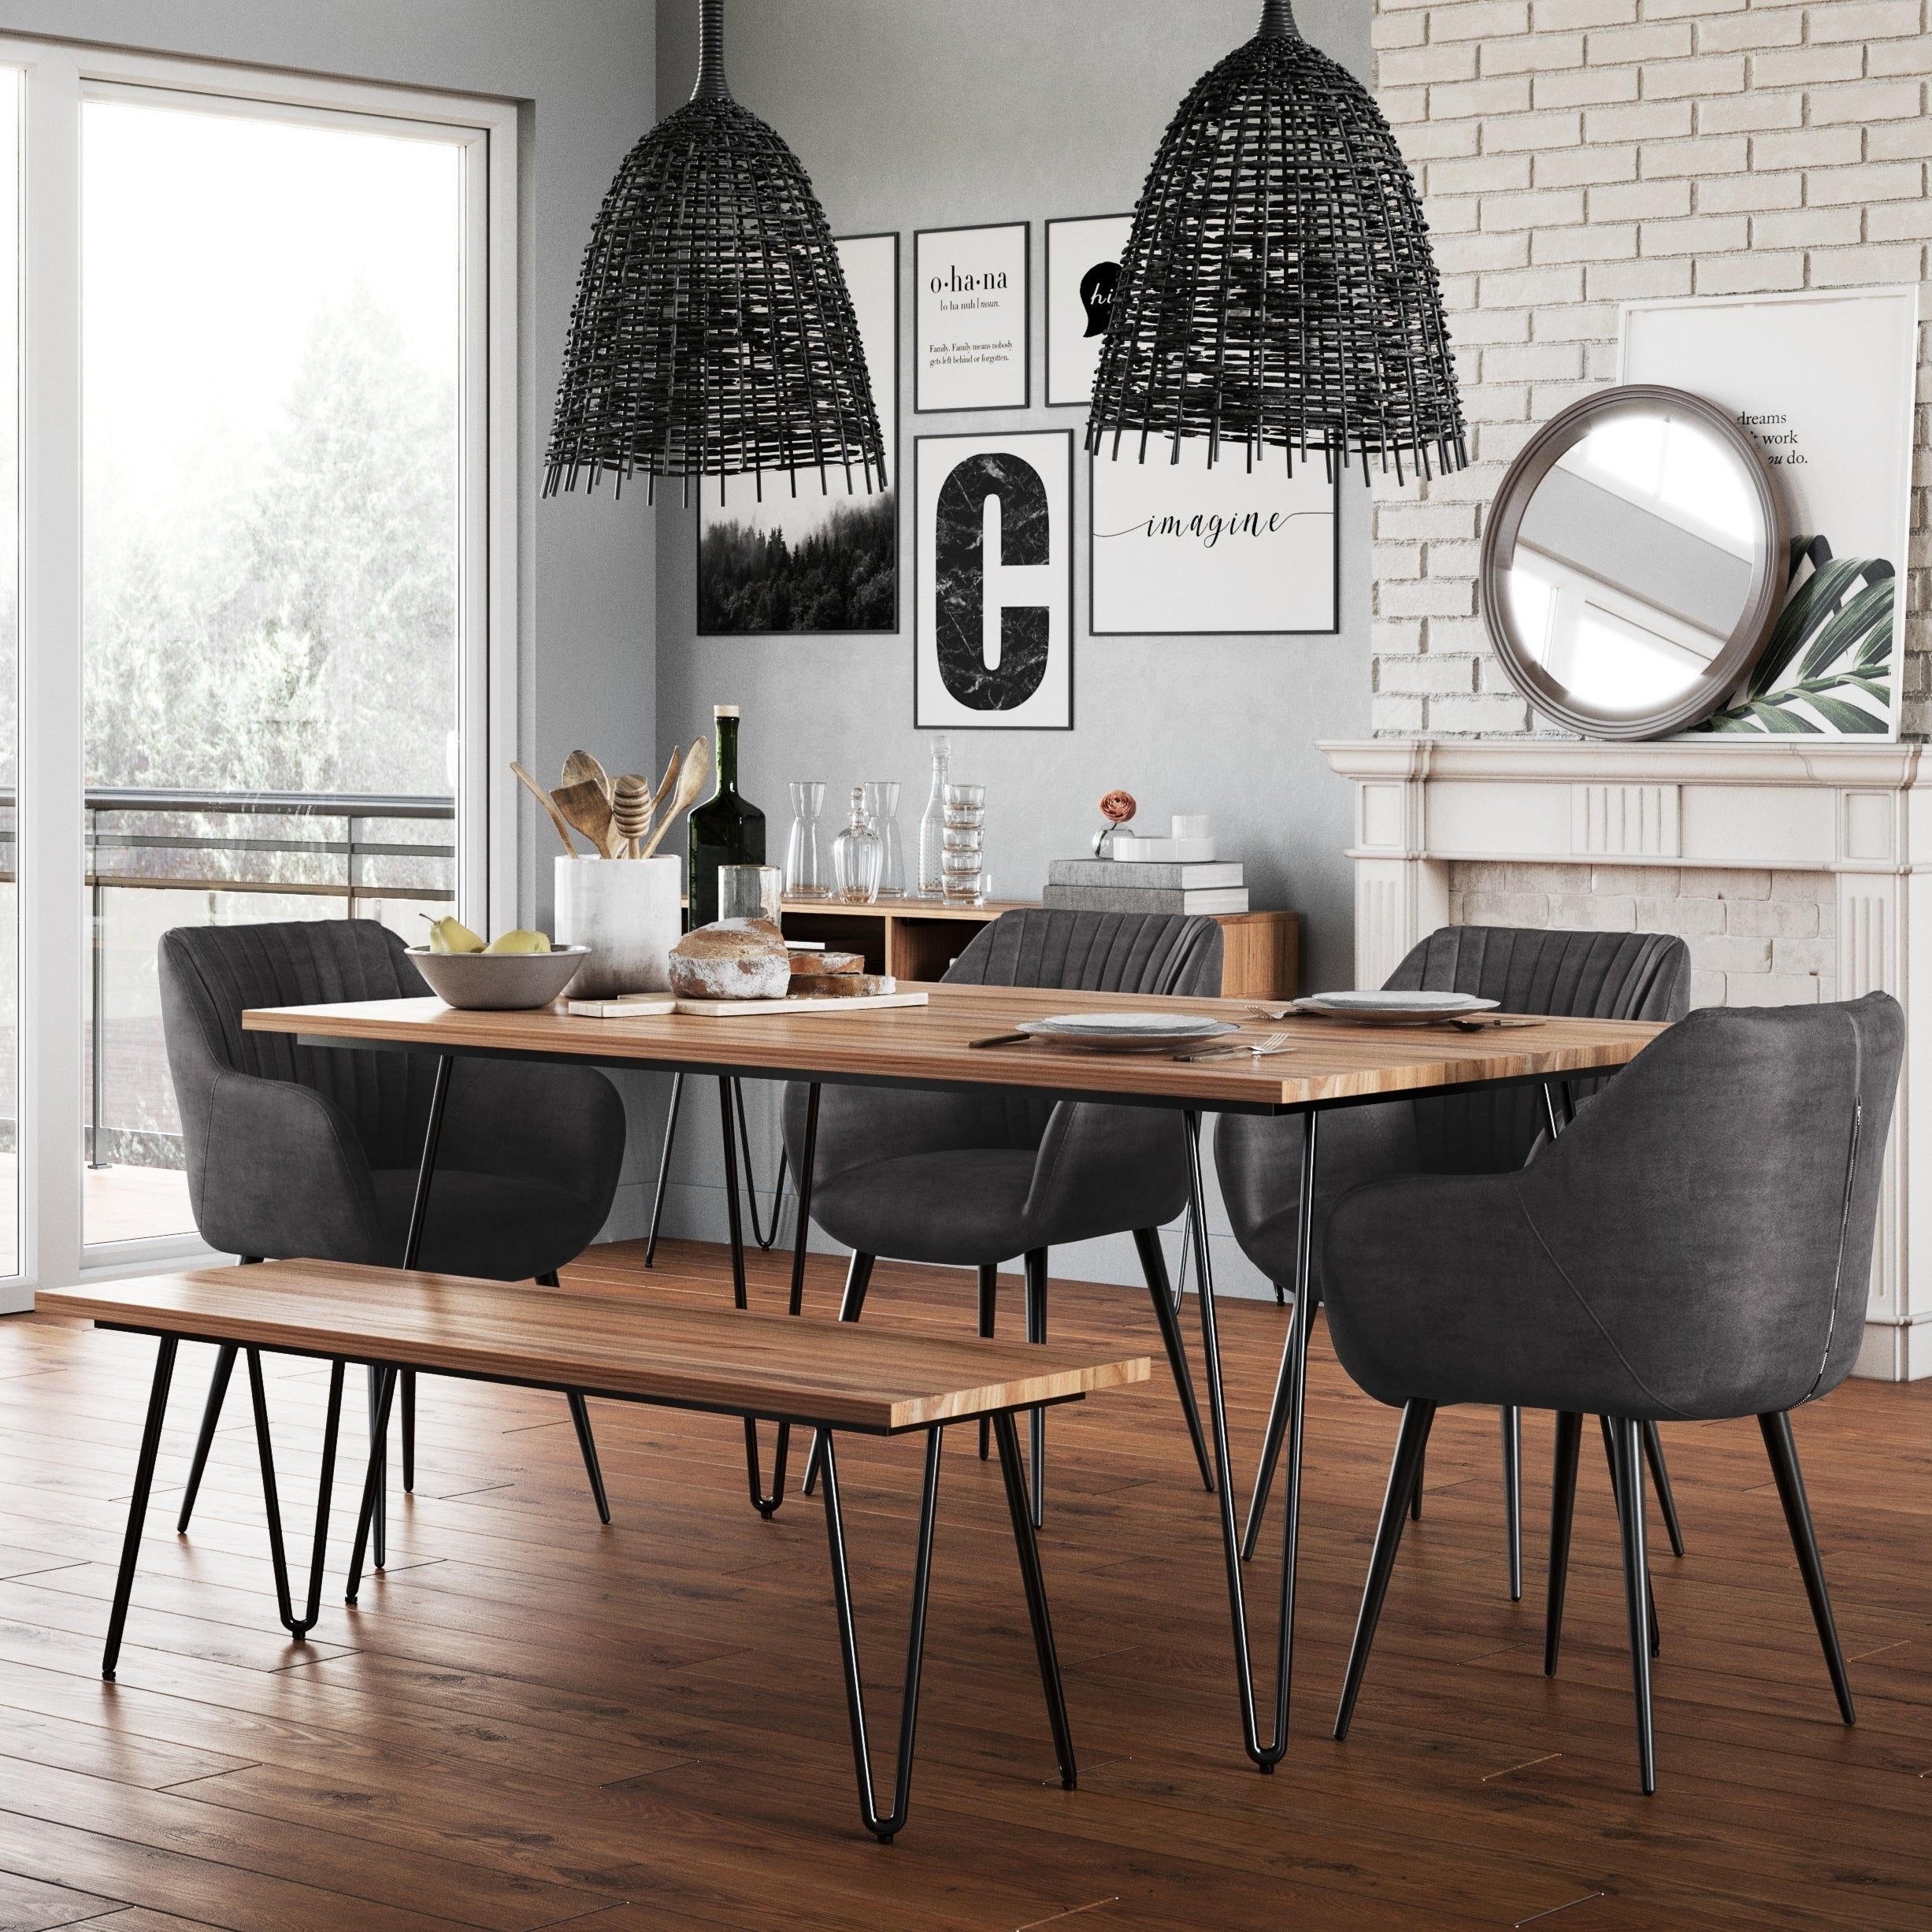 Wyndenhall Moreno Solid Mango Wood And Metal 66 Inch X 40 Inch Rectangle Industrial Contemporary Dining Table In Natural On Sale Overstock 28866437